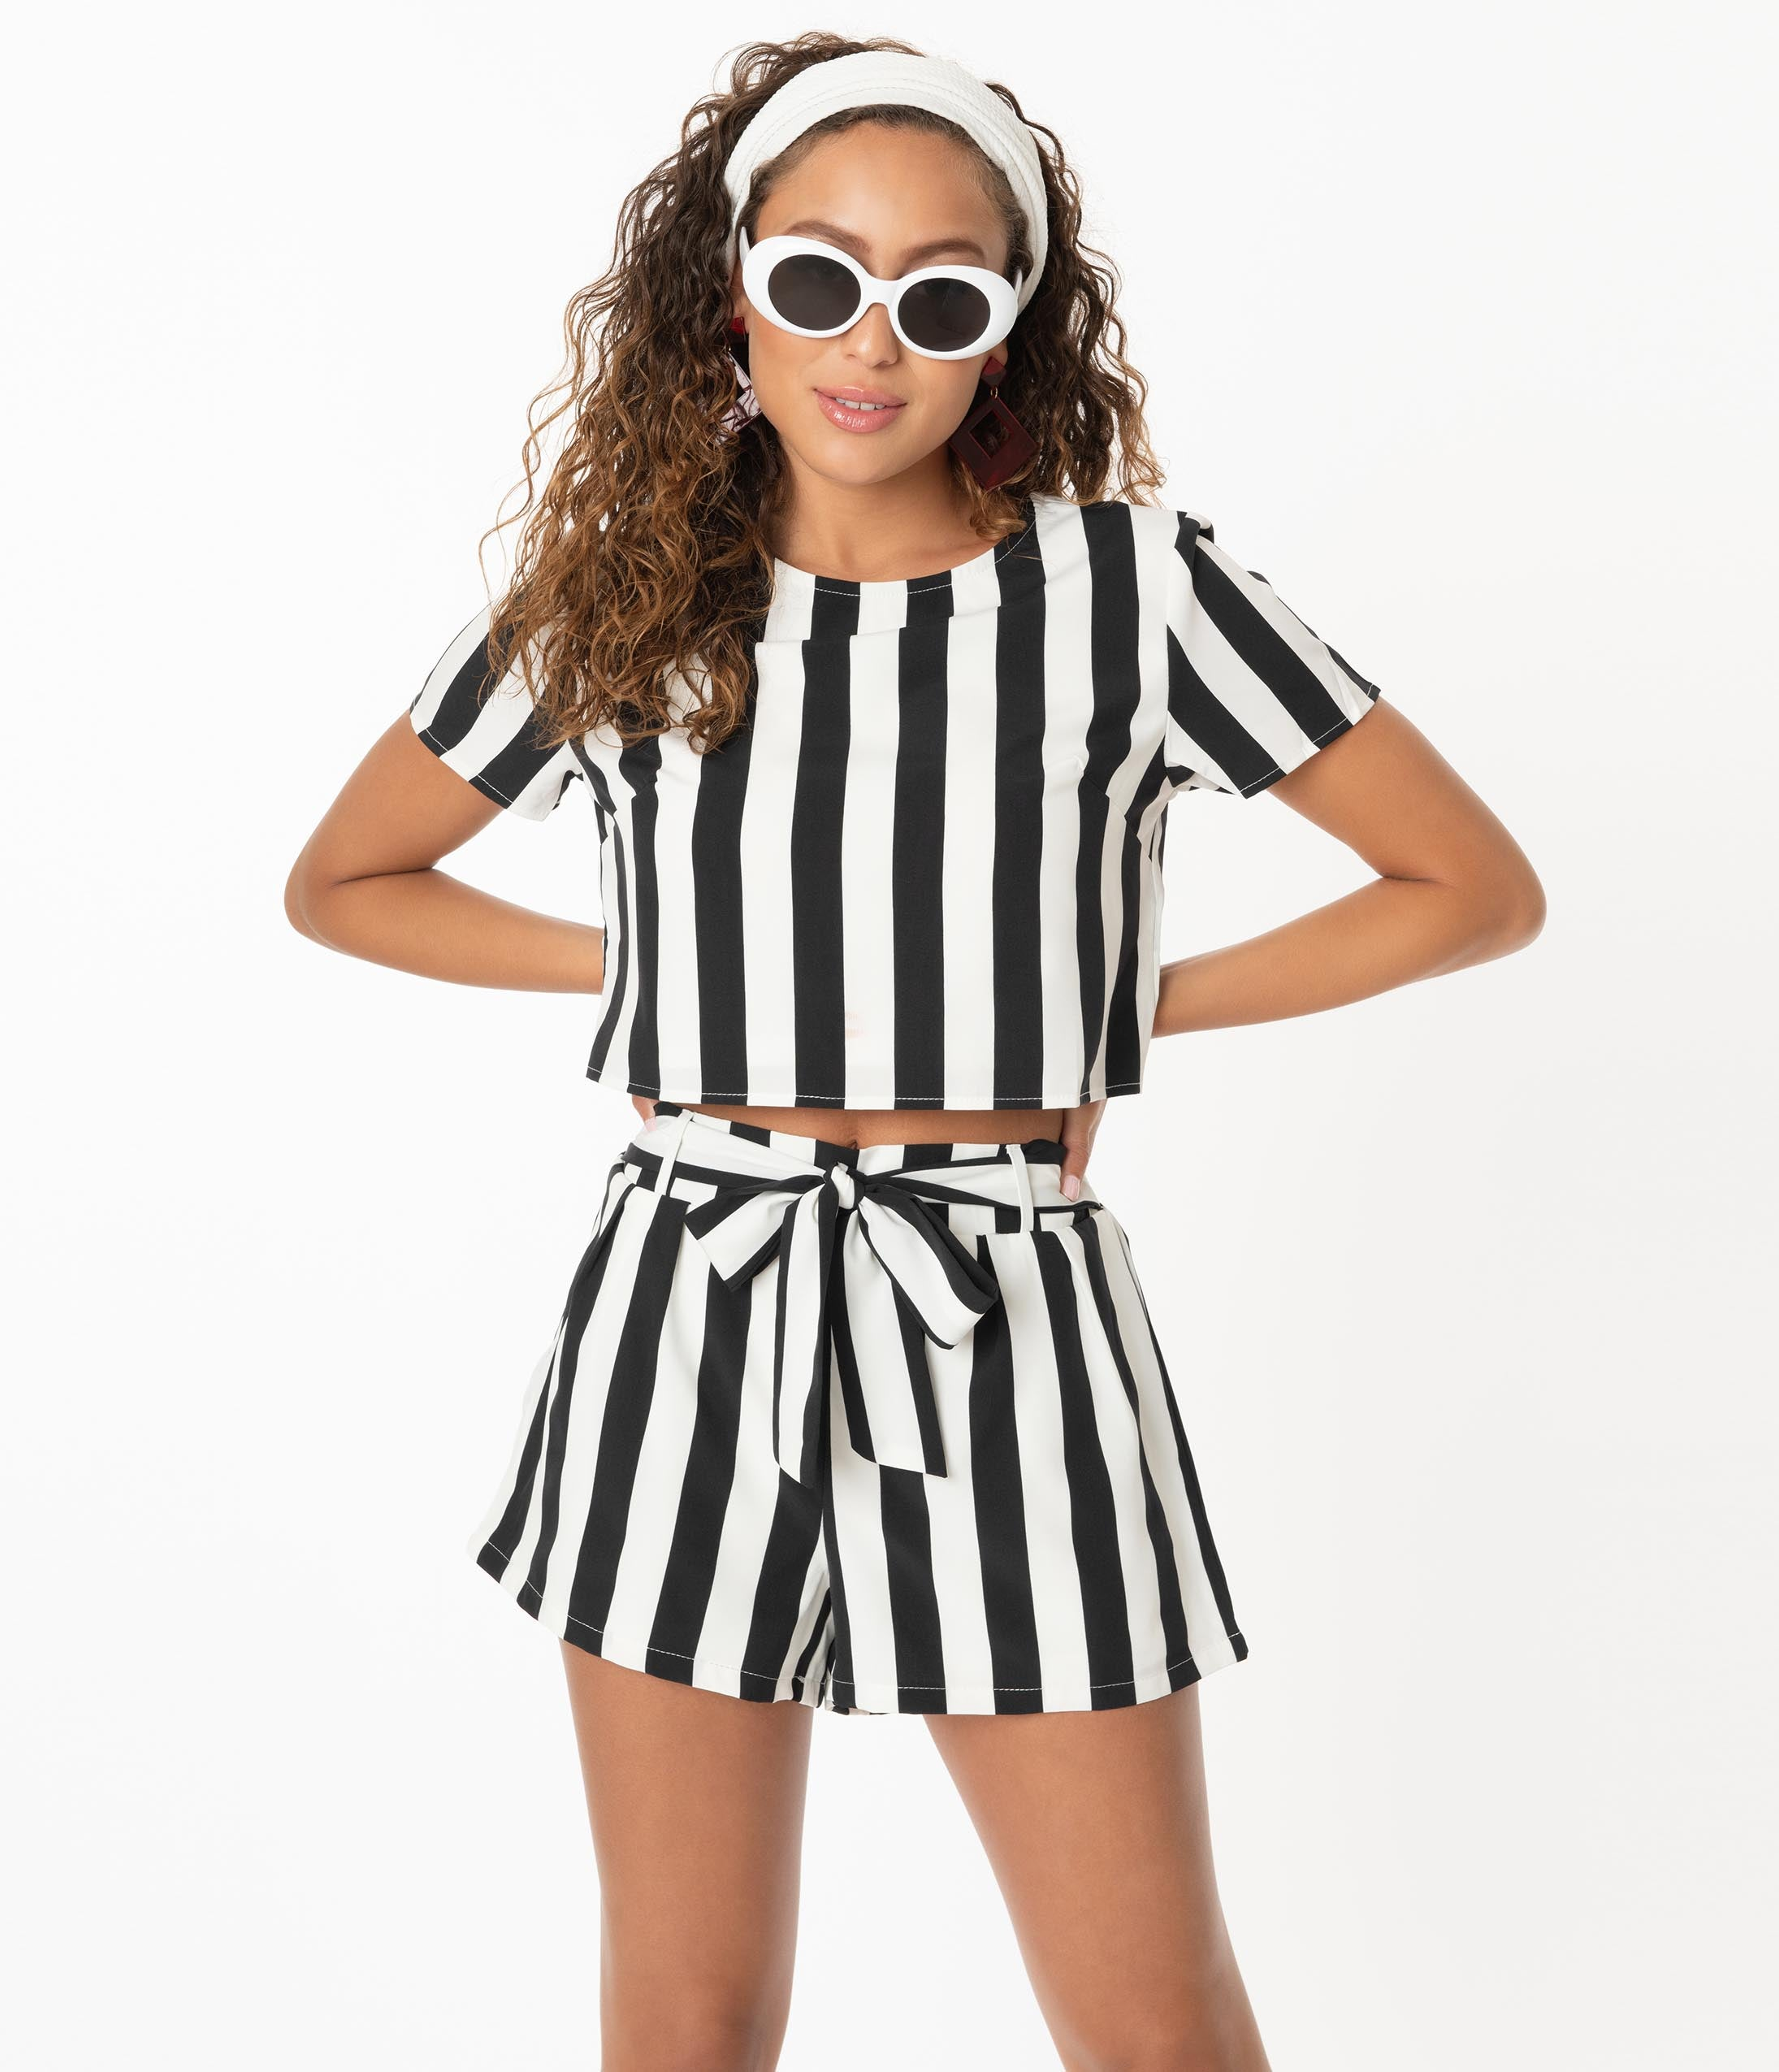 Vintage Rompers, Playsuits   Retro, Pin Up, Rockabilly Playsuits Retro Style Black  White Stripe Two Piece Romper Set $58.00 AT vintagedancer.com